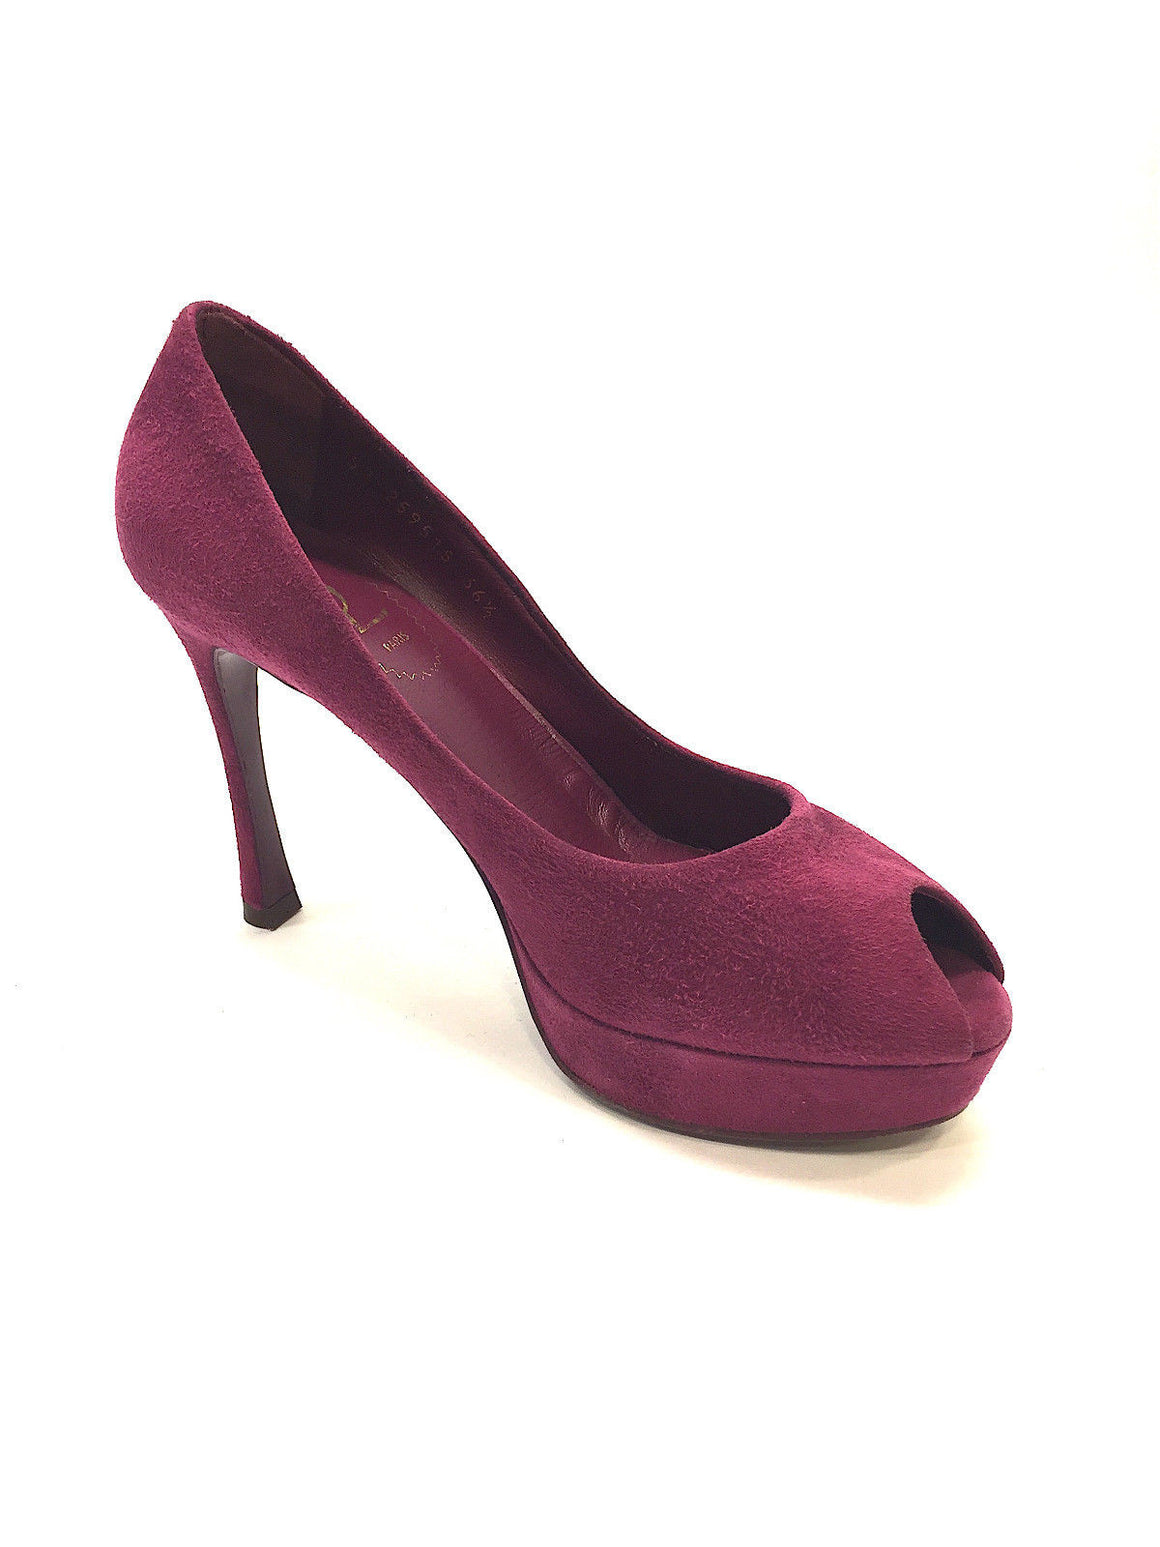 bisbiz.com YVES ST. LAURENT - YSL  Fuchsia Suede Peep-Toe Platform Heel Pumps Shoes  Size: 36.5 / 6.5 - Bis Luxury Resale